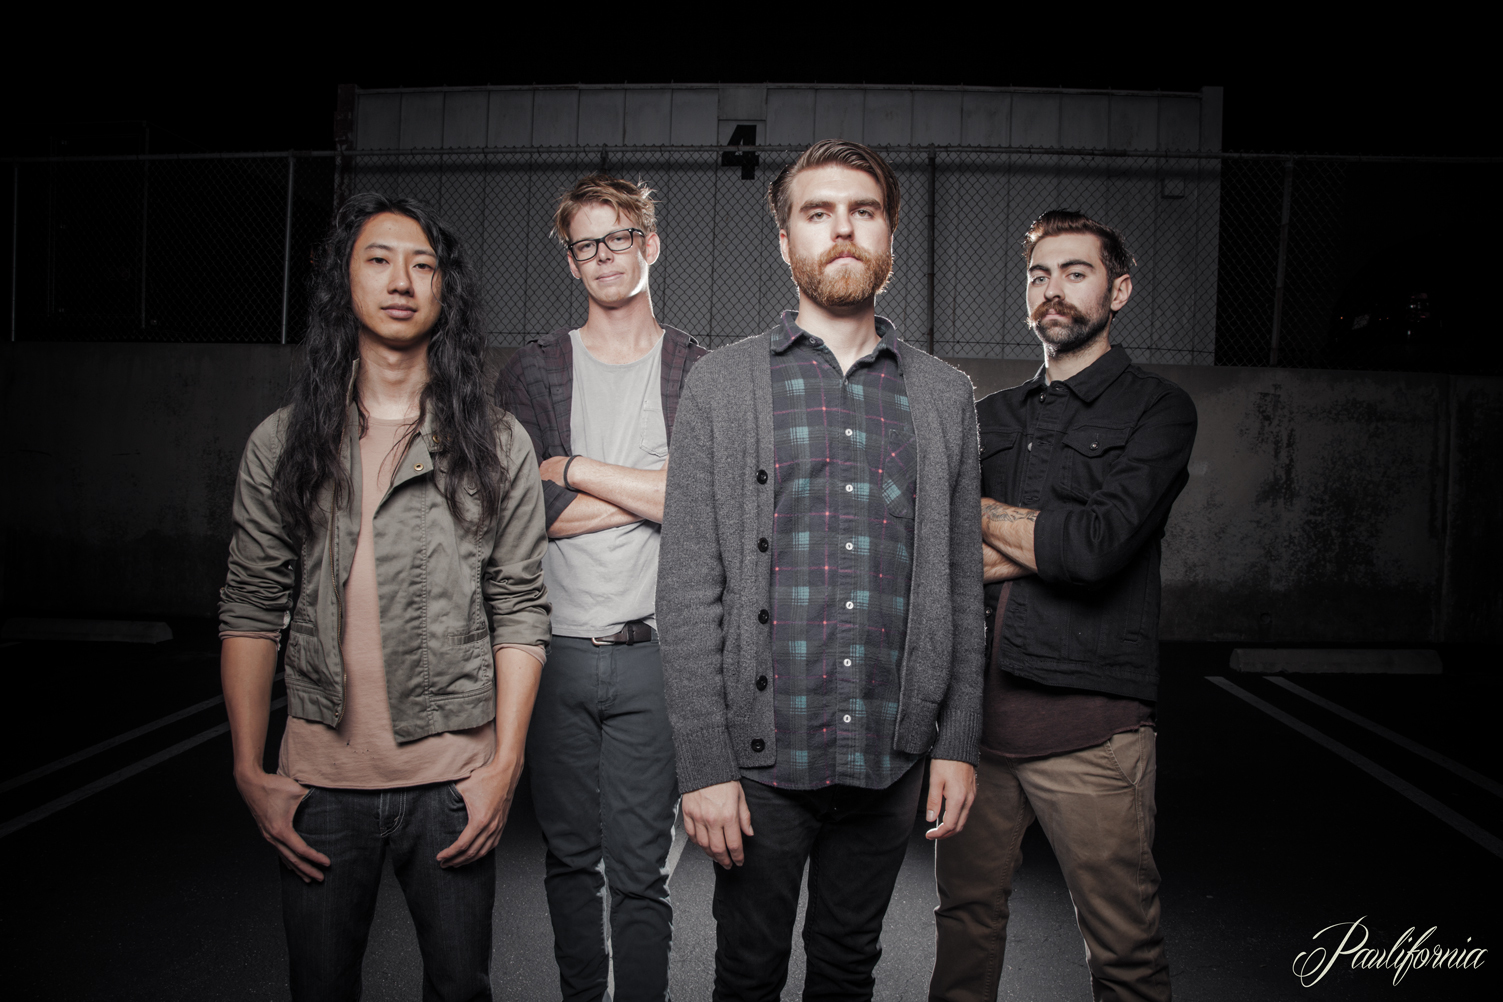 GARDNERS LOGIC is (from left to right) Vince, Phung, Mike Willson, Ian Bailey and Wyatt Fullmer.  Photo by PAULIFORNIA